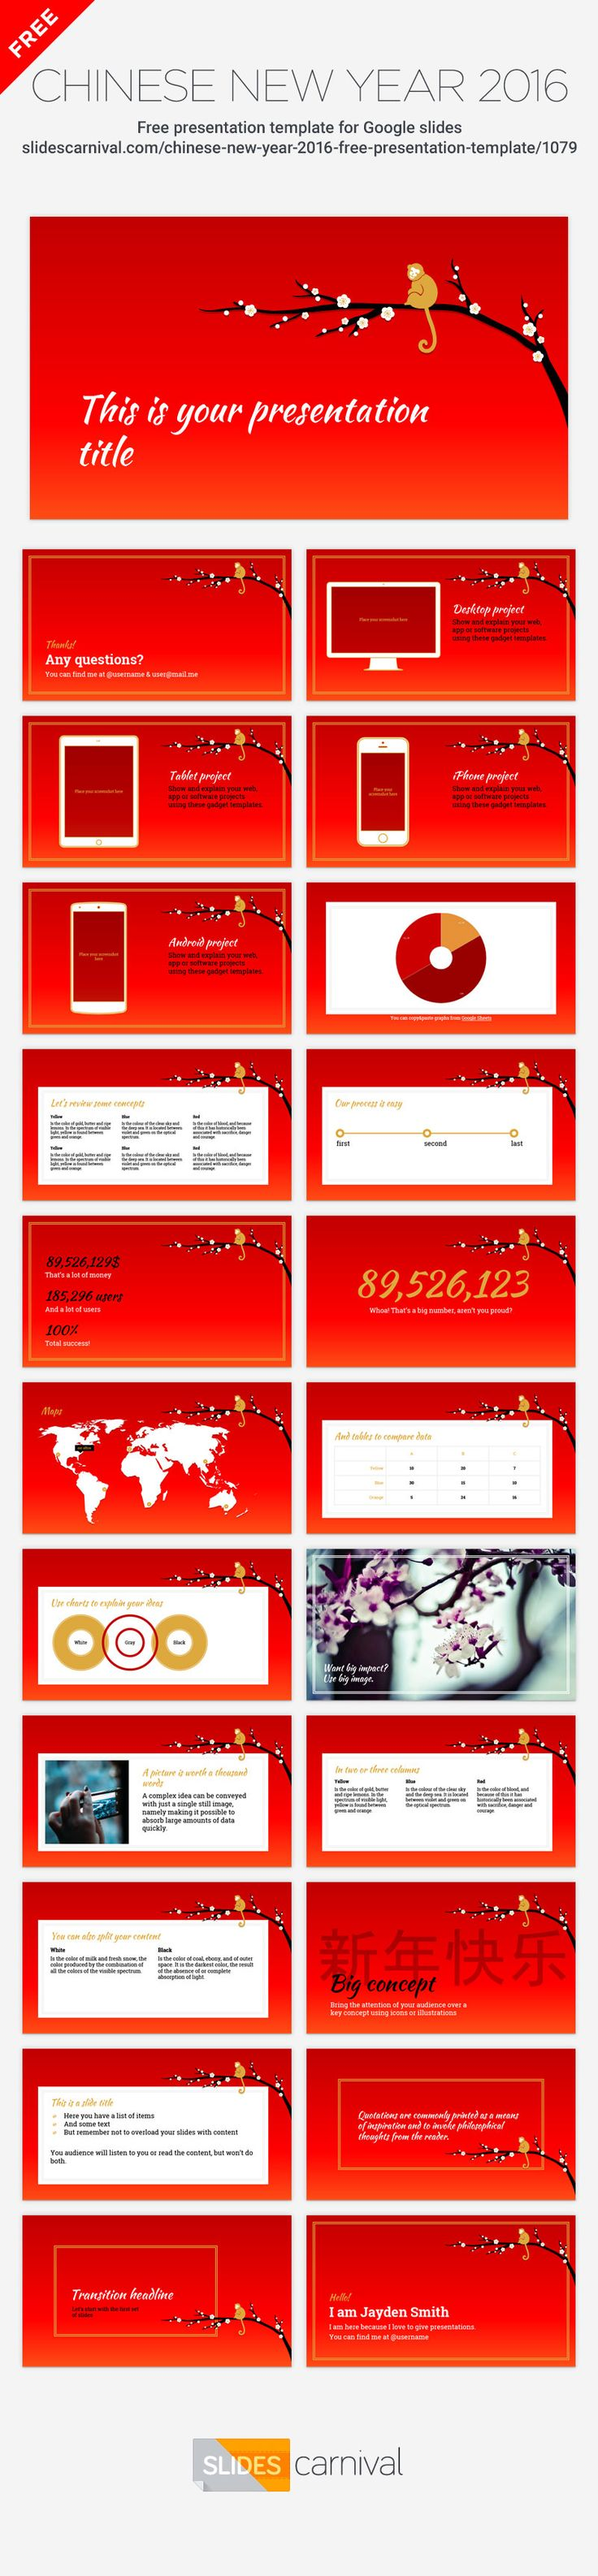 use this free presentation template to celebrate the chinese new year spring fe